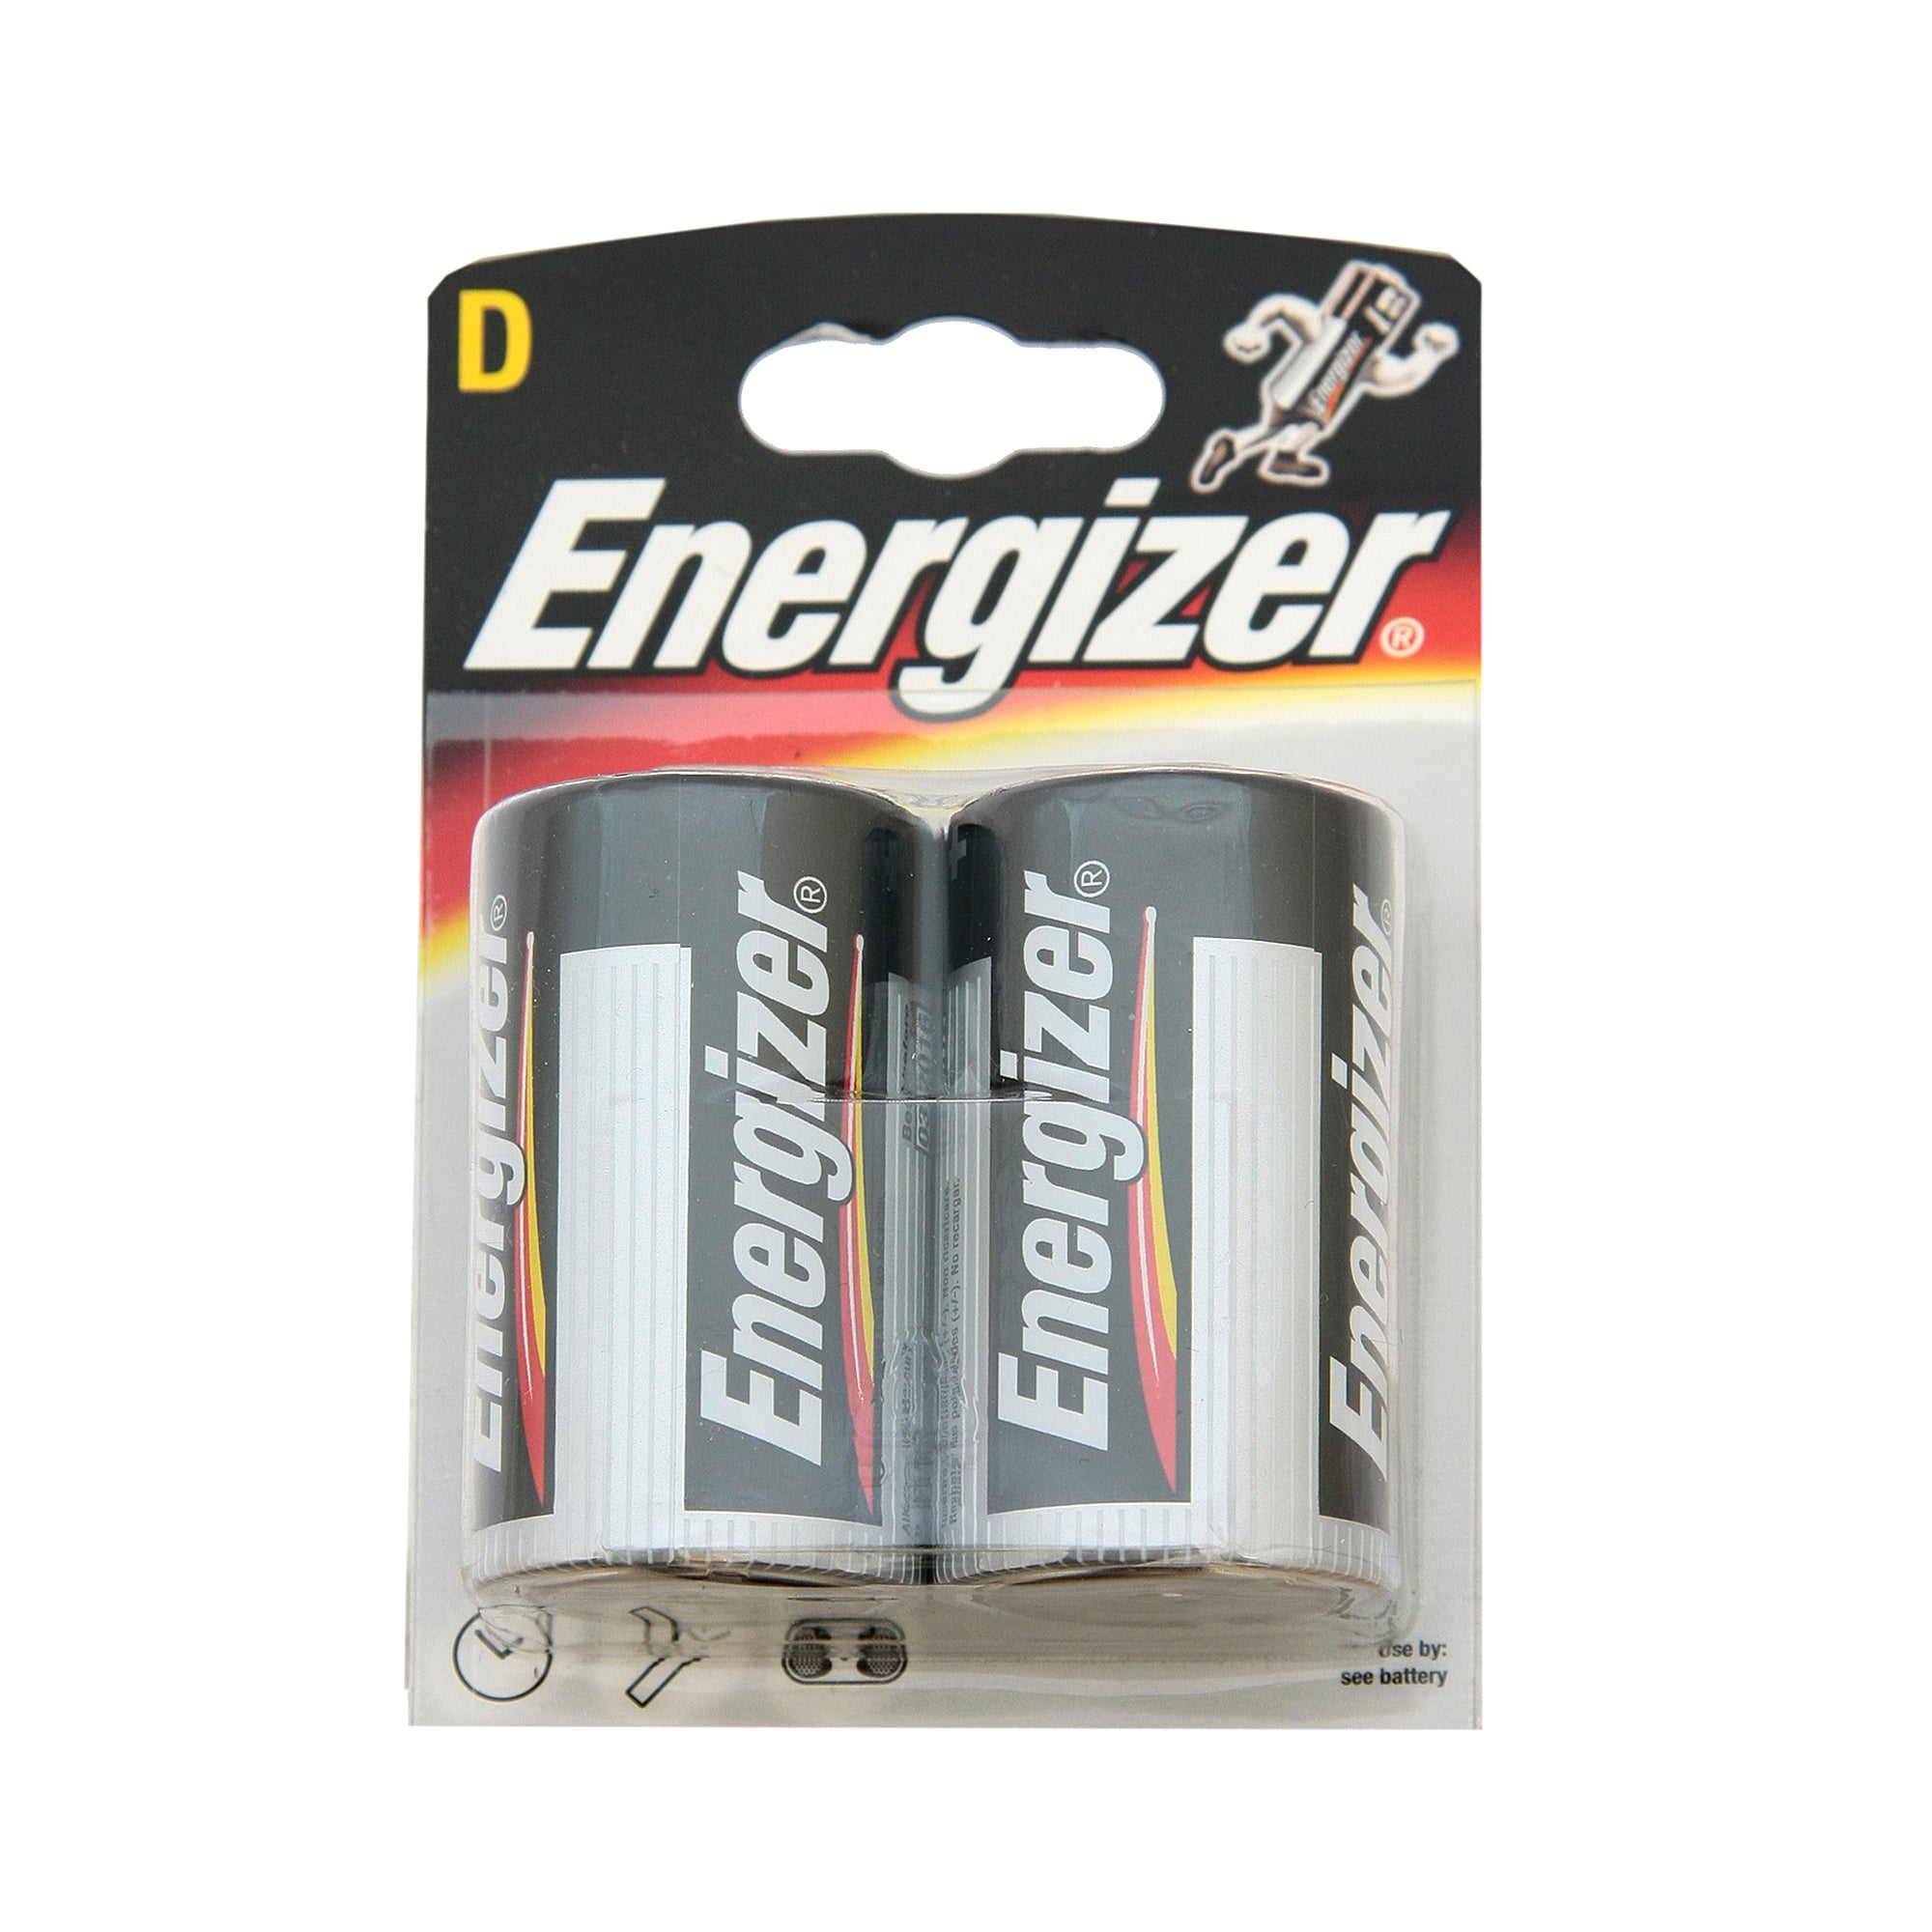 Energizer Alkaline Classic D Pack of 2 Batteries